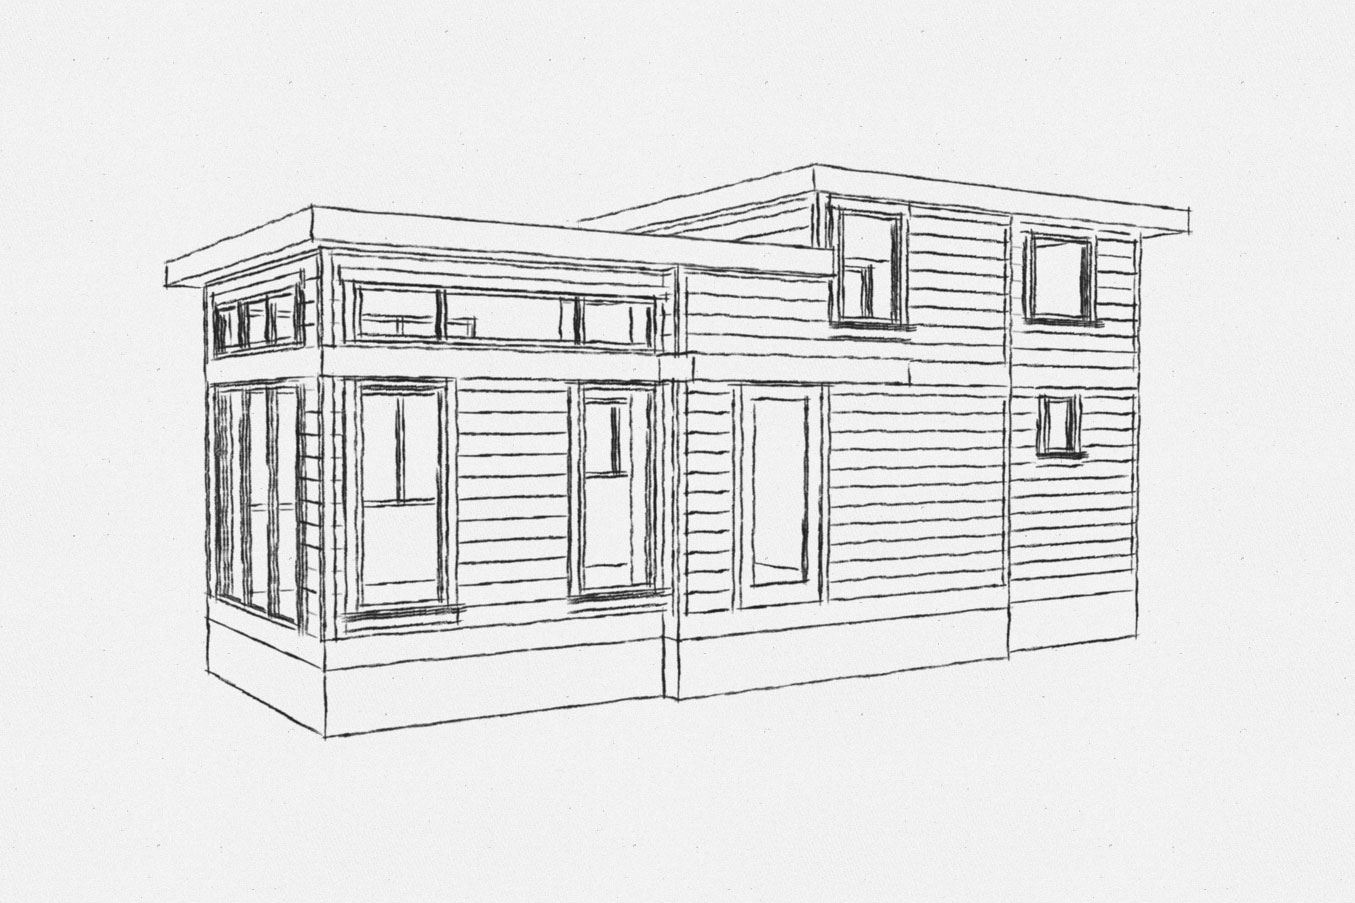 Salish tiny home model